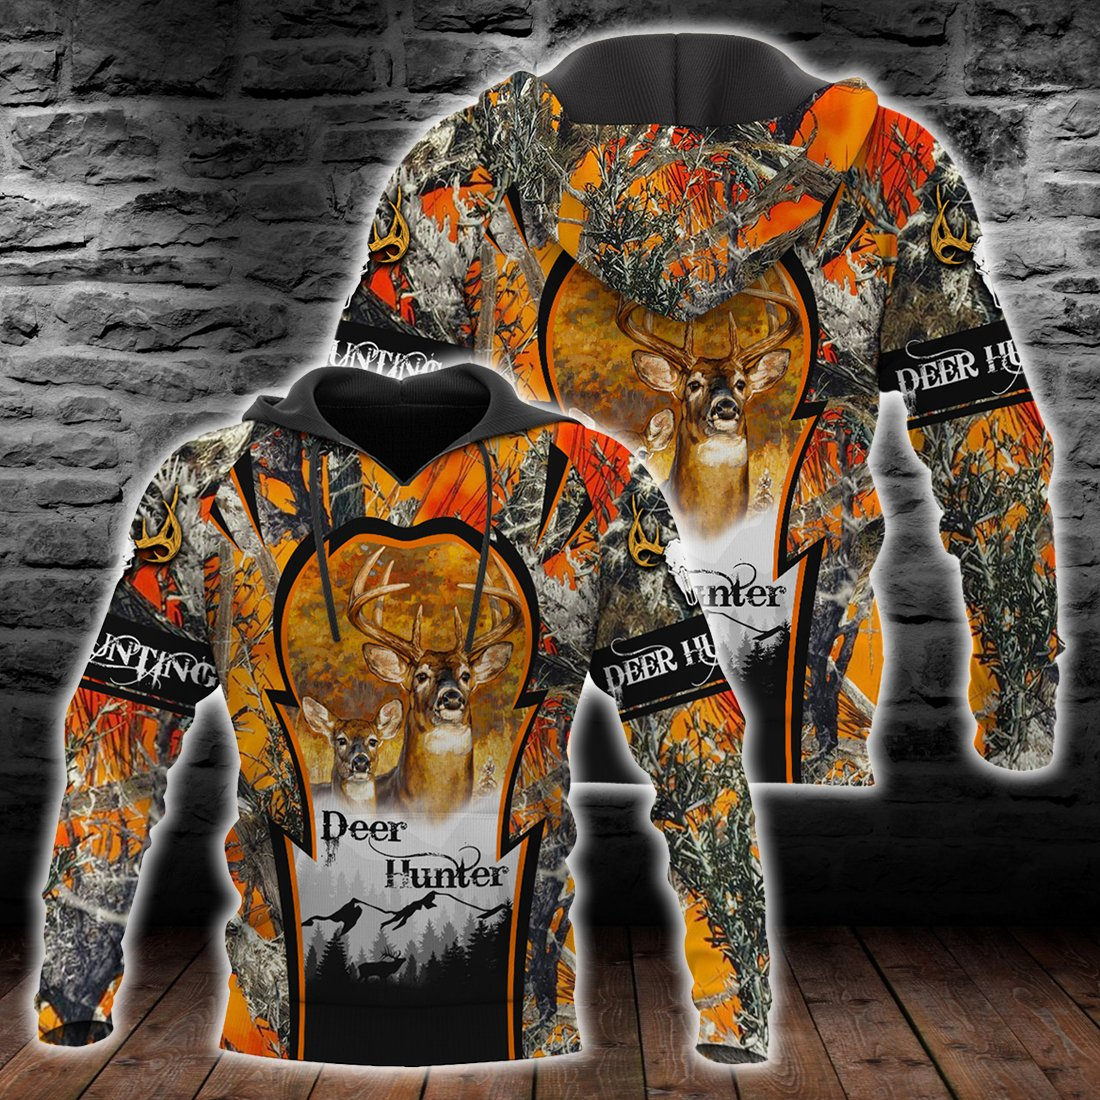 Deer Hunting Deer Hunter all over print shirts for men and women